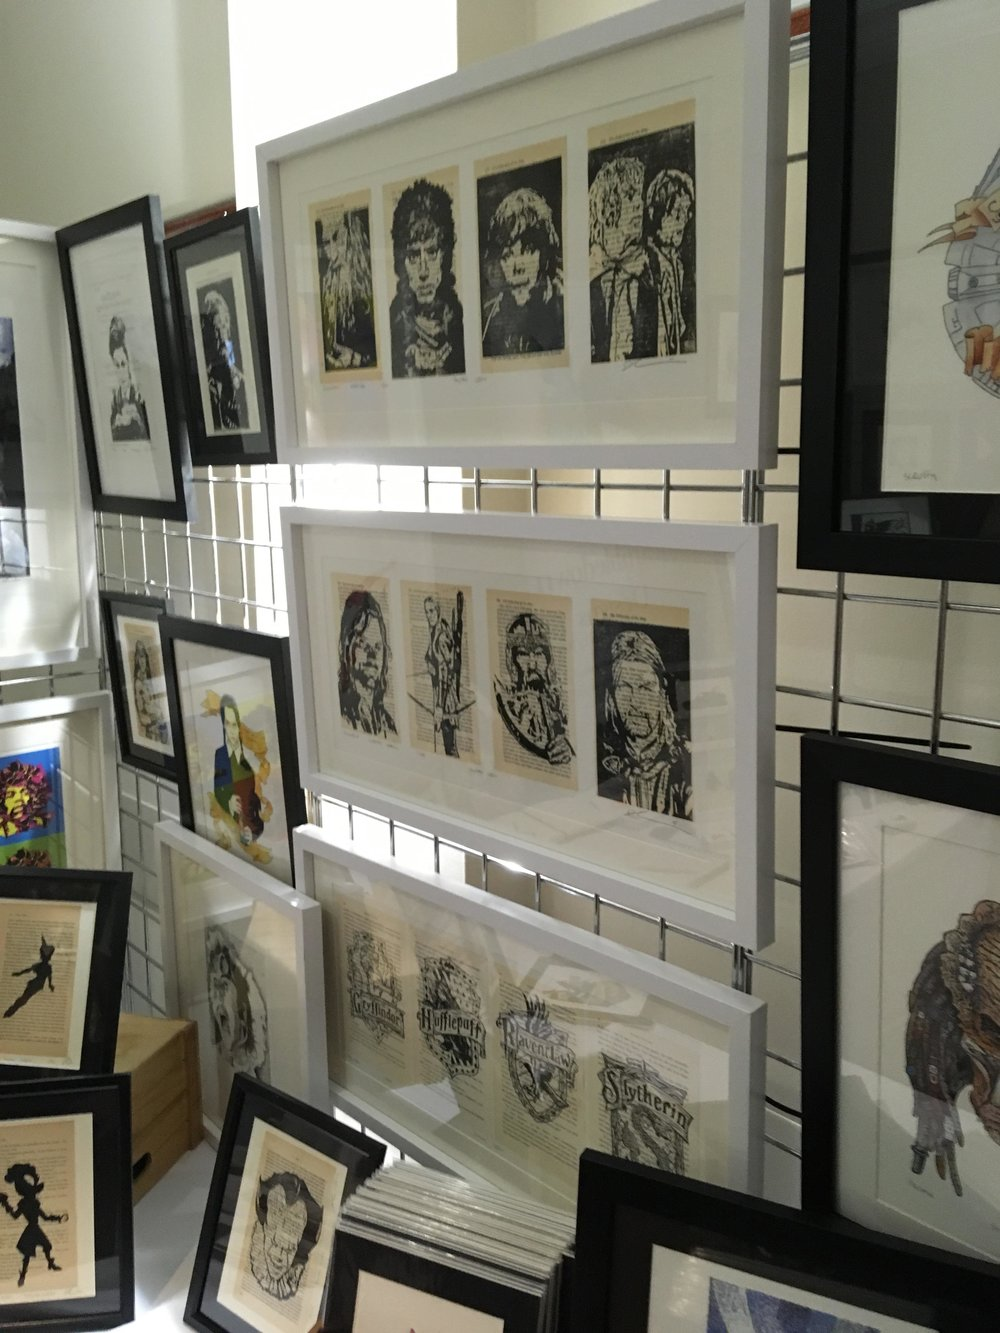 Fig. 3 - The work of  Brambledown Designs  and their silhouette prints.